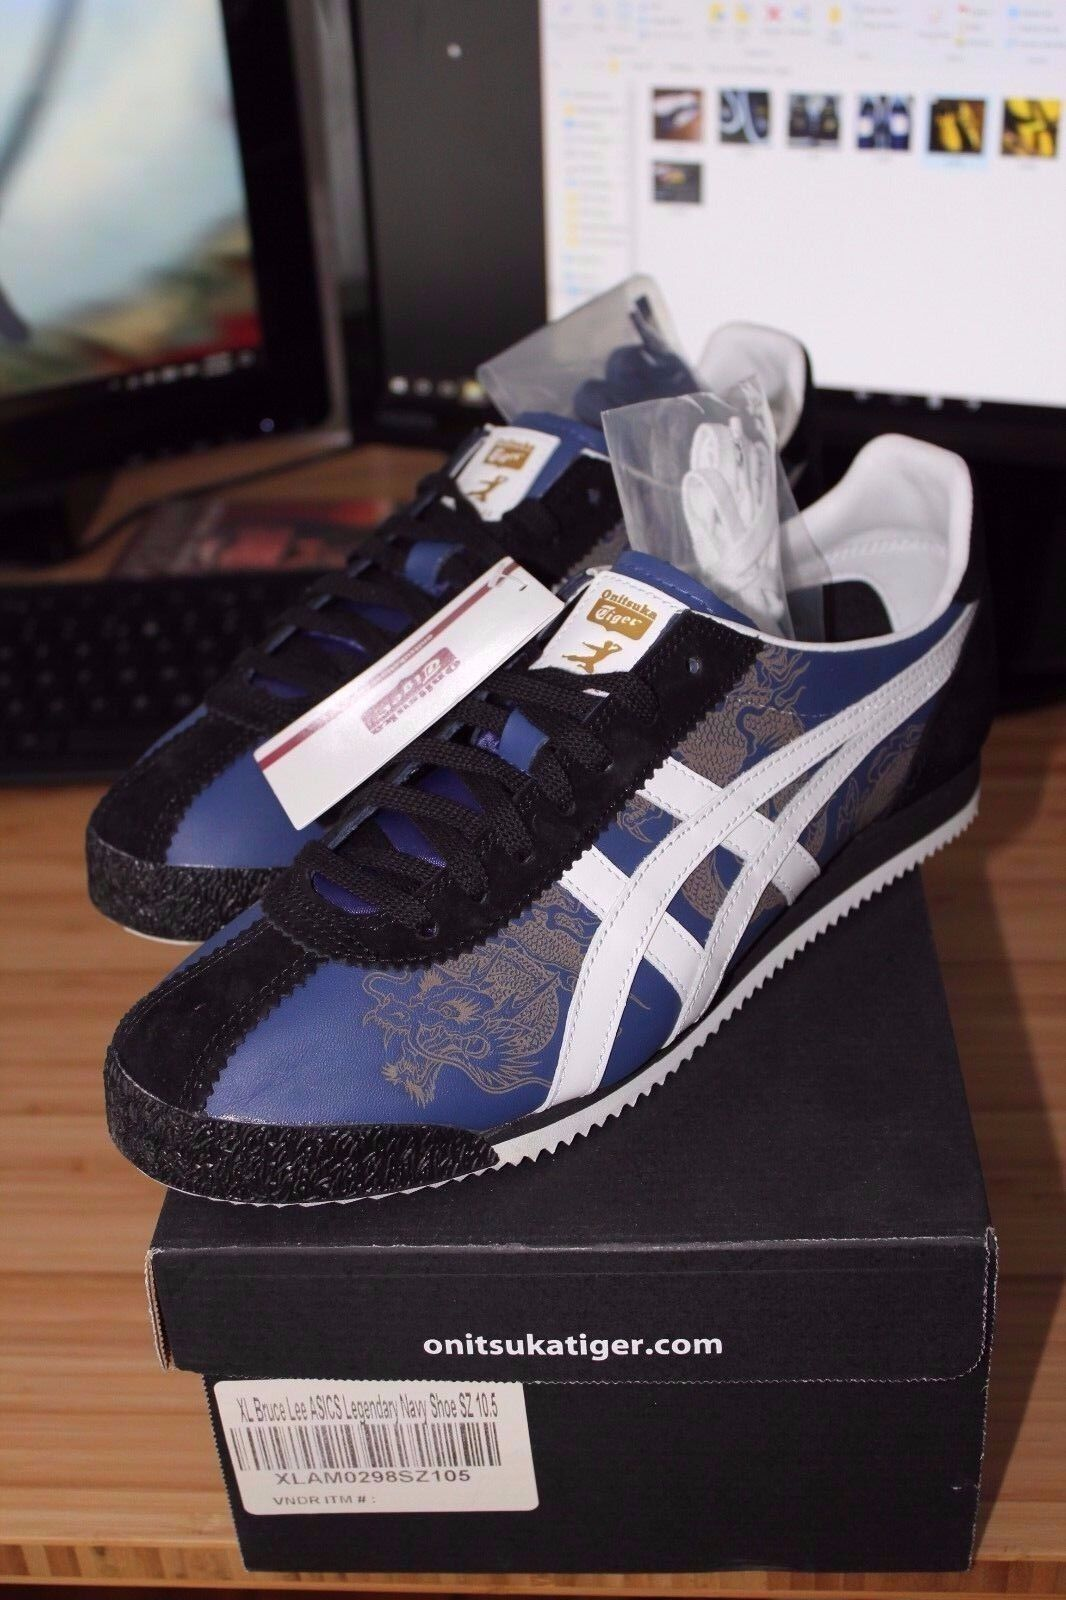 Bruce Lee Onitsuka Tiger Corsair - Jeet Kune Do Blue Sneakers, Ltd to ONLY 100! Cheap and beautiful fashion